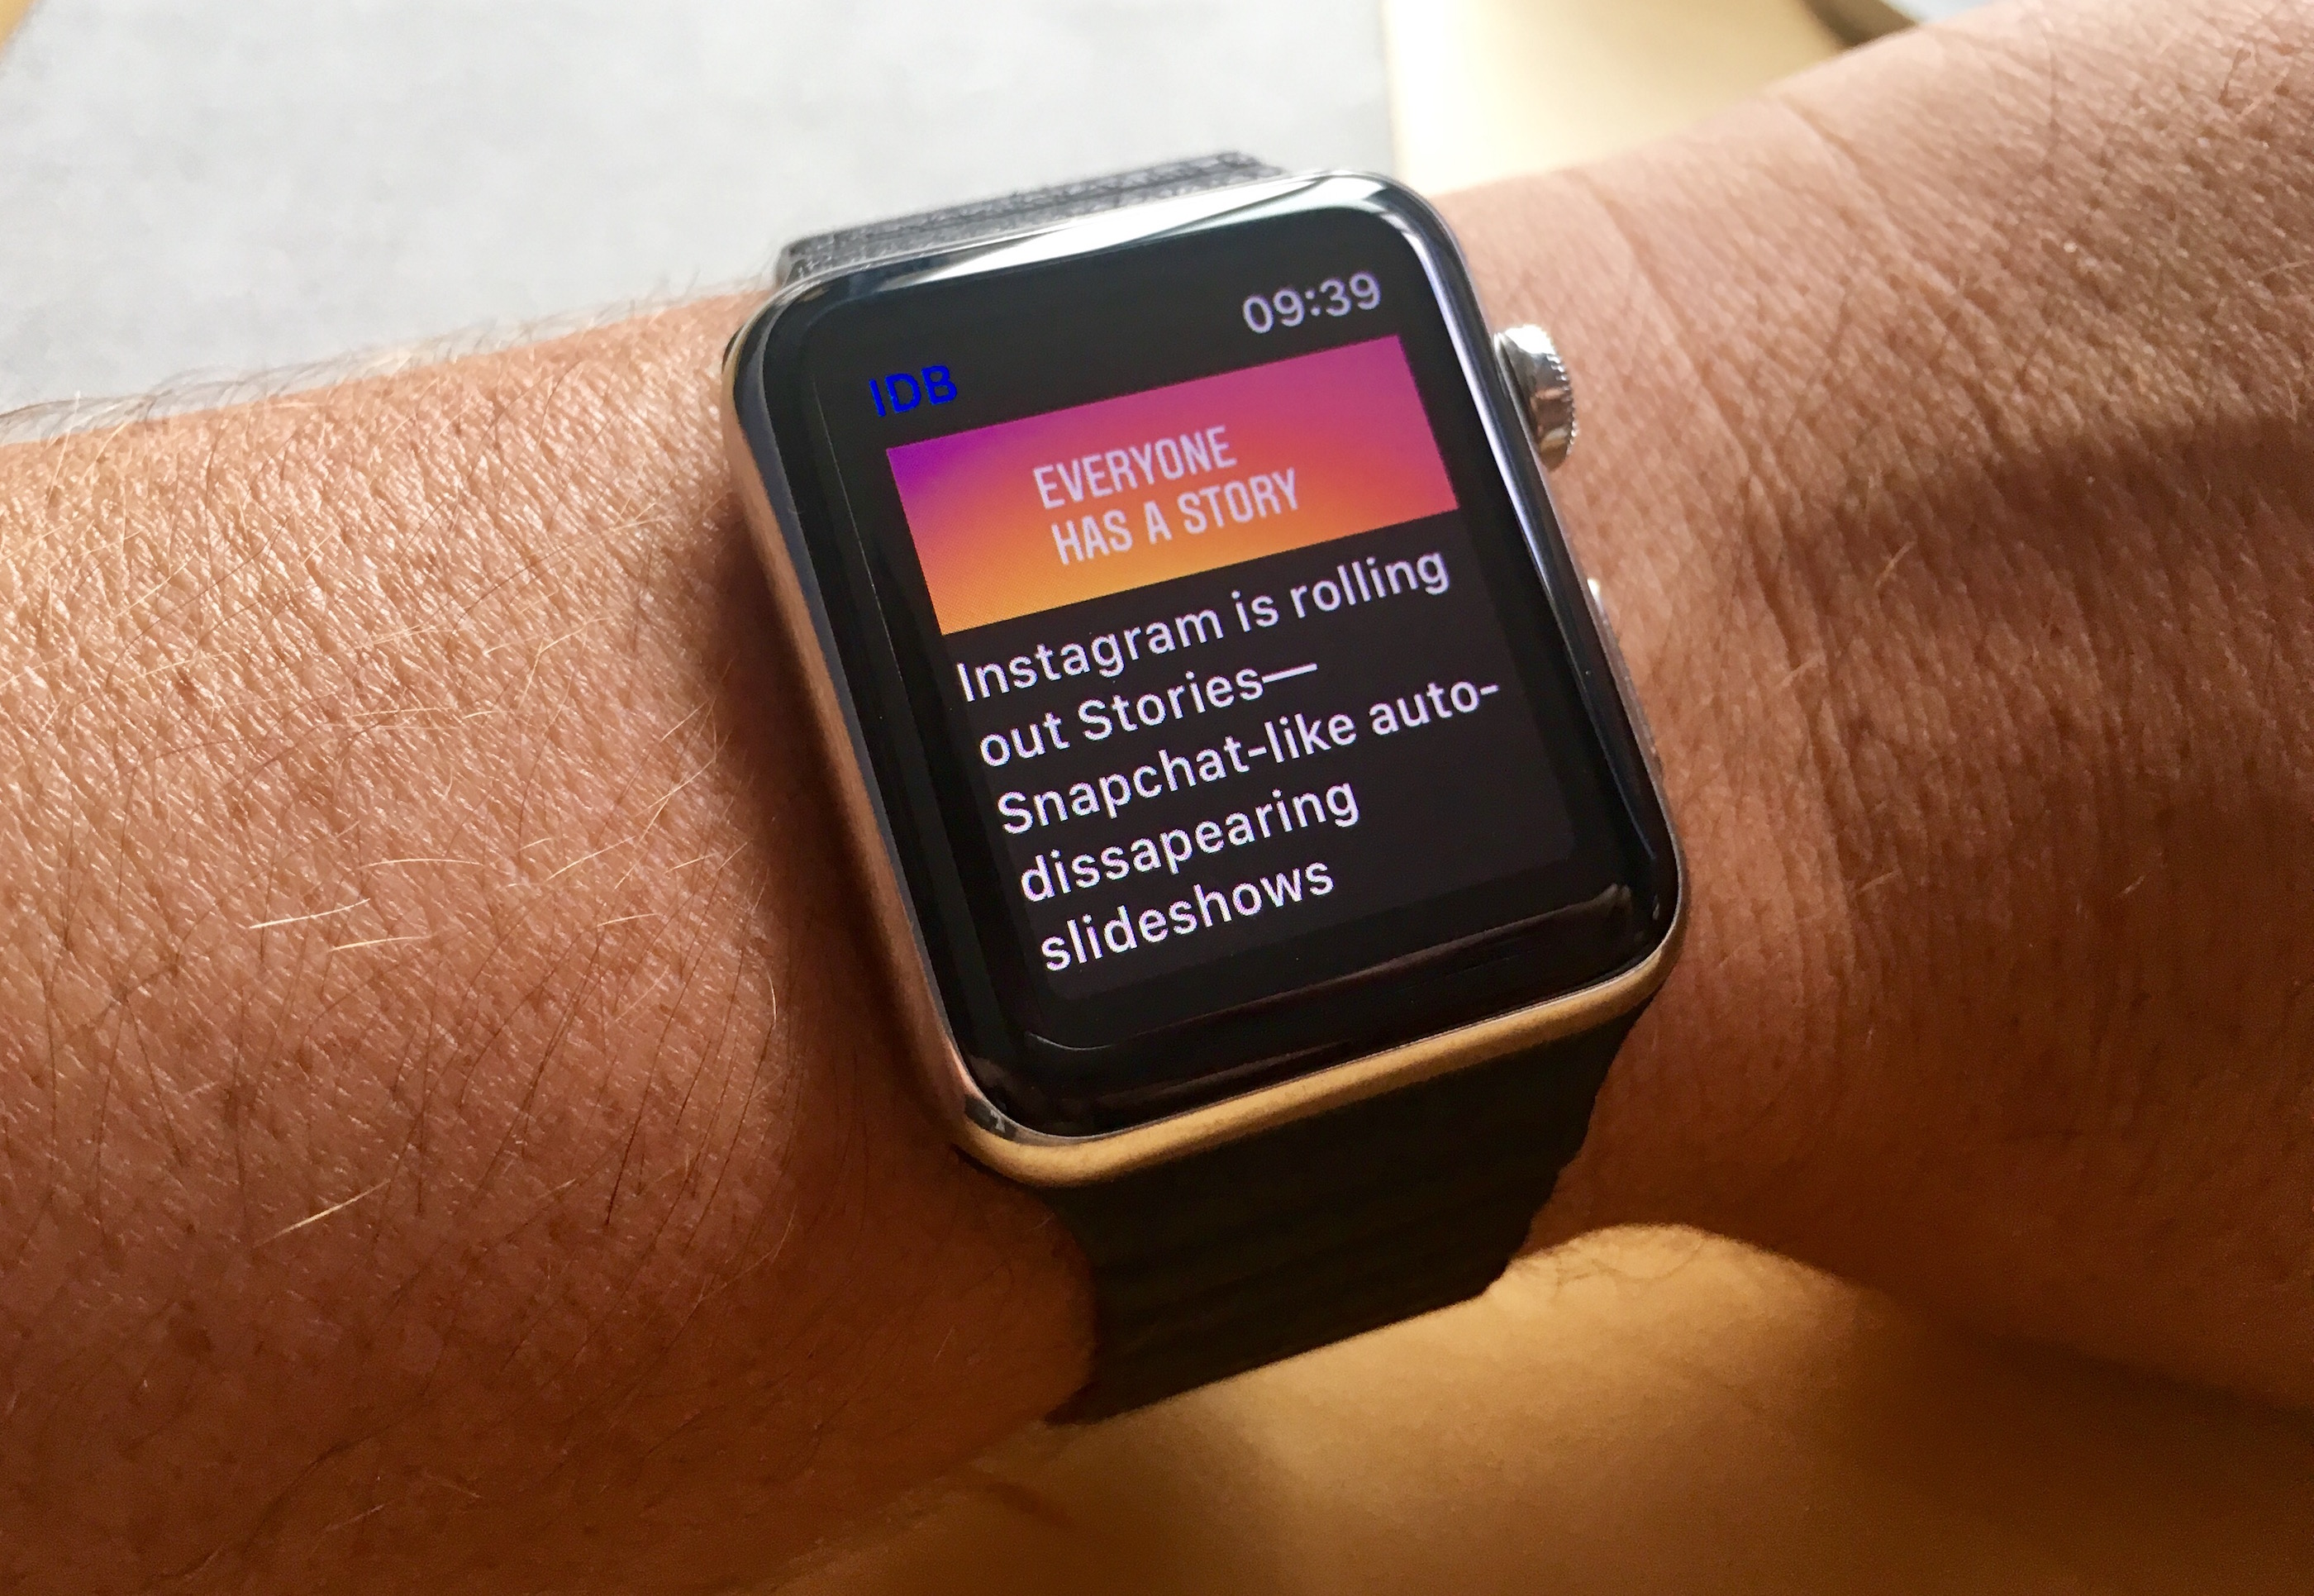 iDB app on apple watch